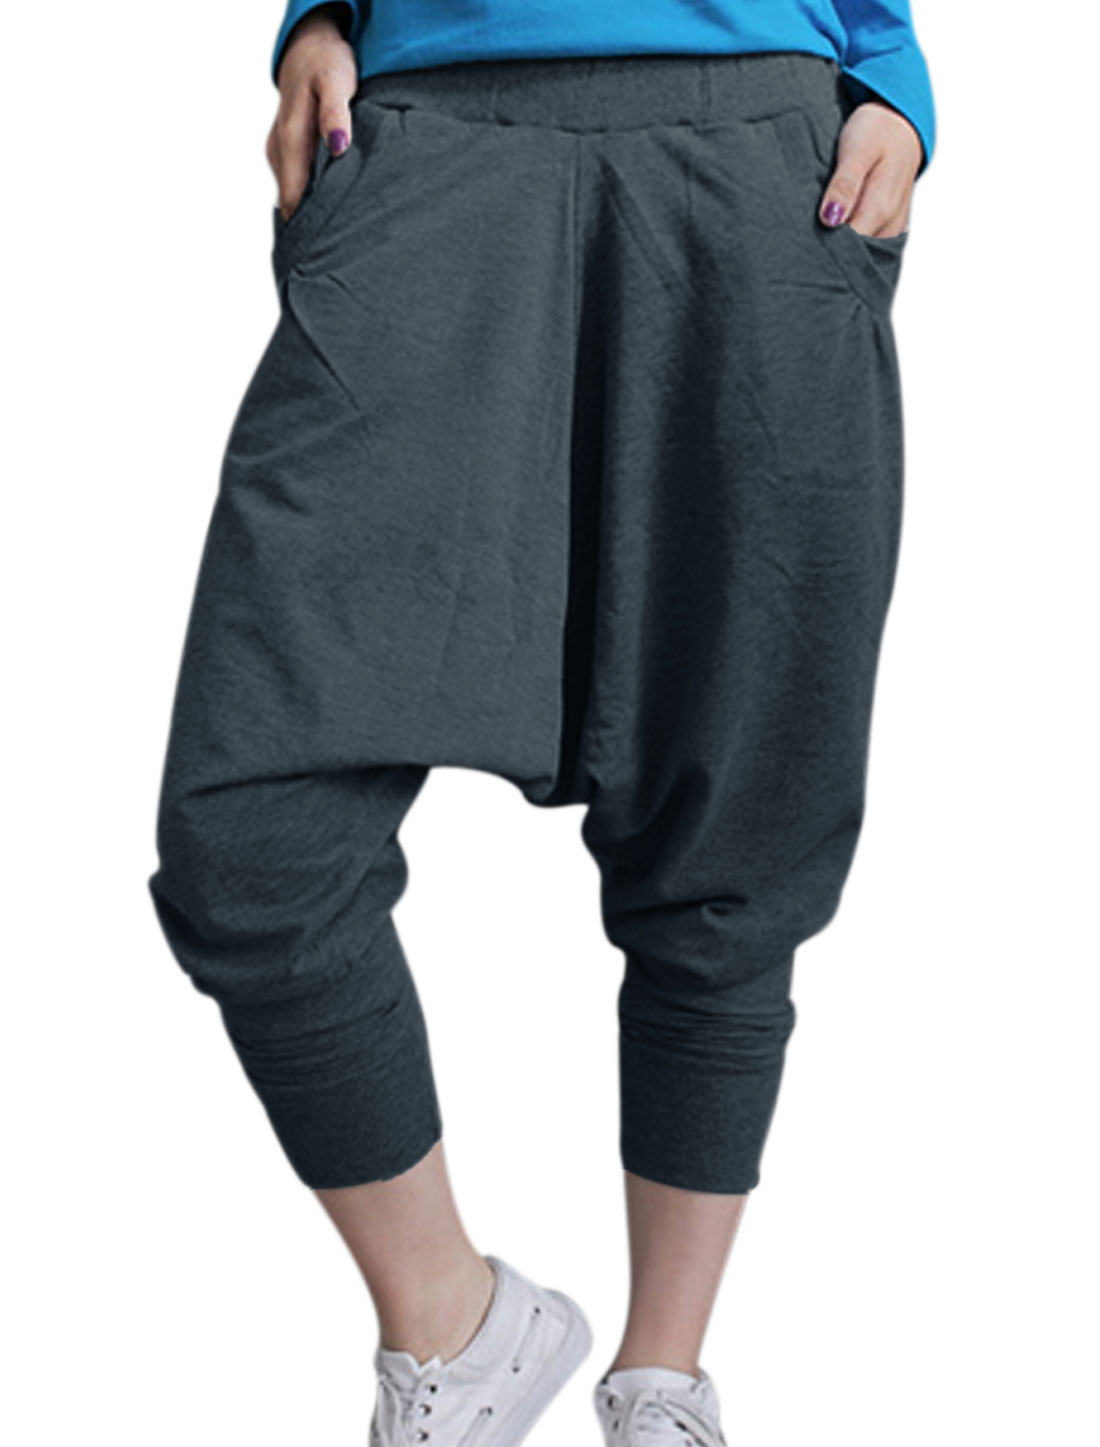 Lady Hip-Hop Style Loose Crotch Leisure Harem Trousers Ebony M